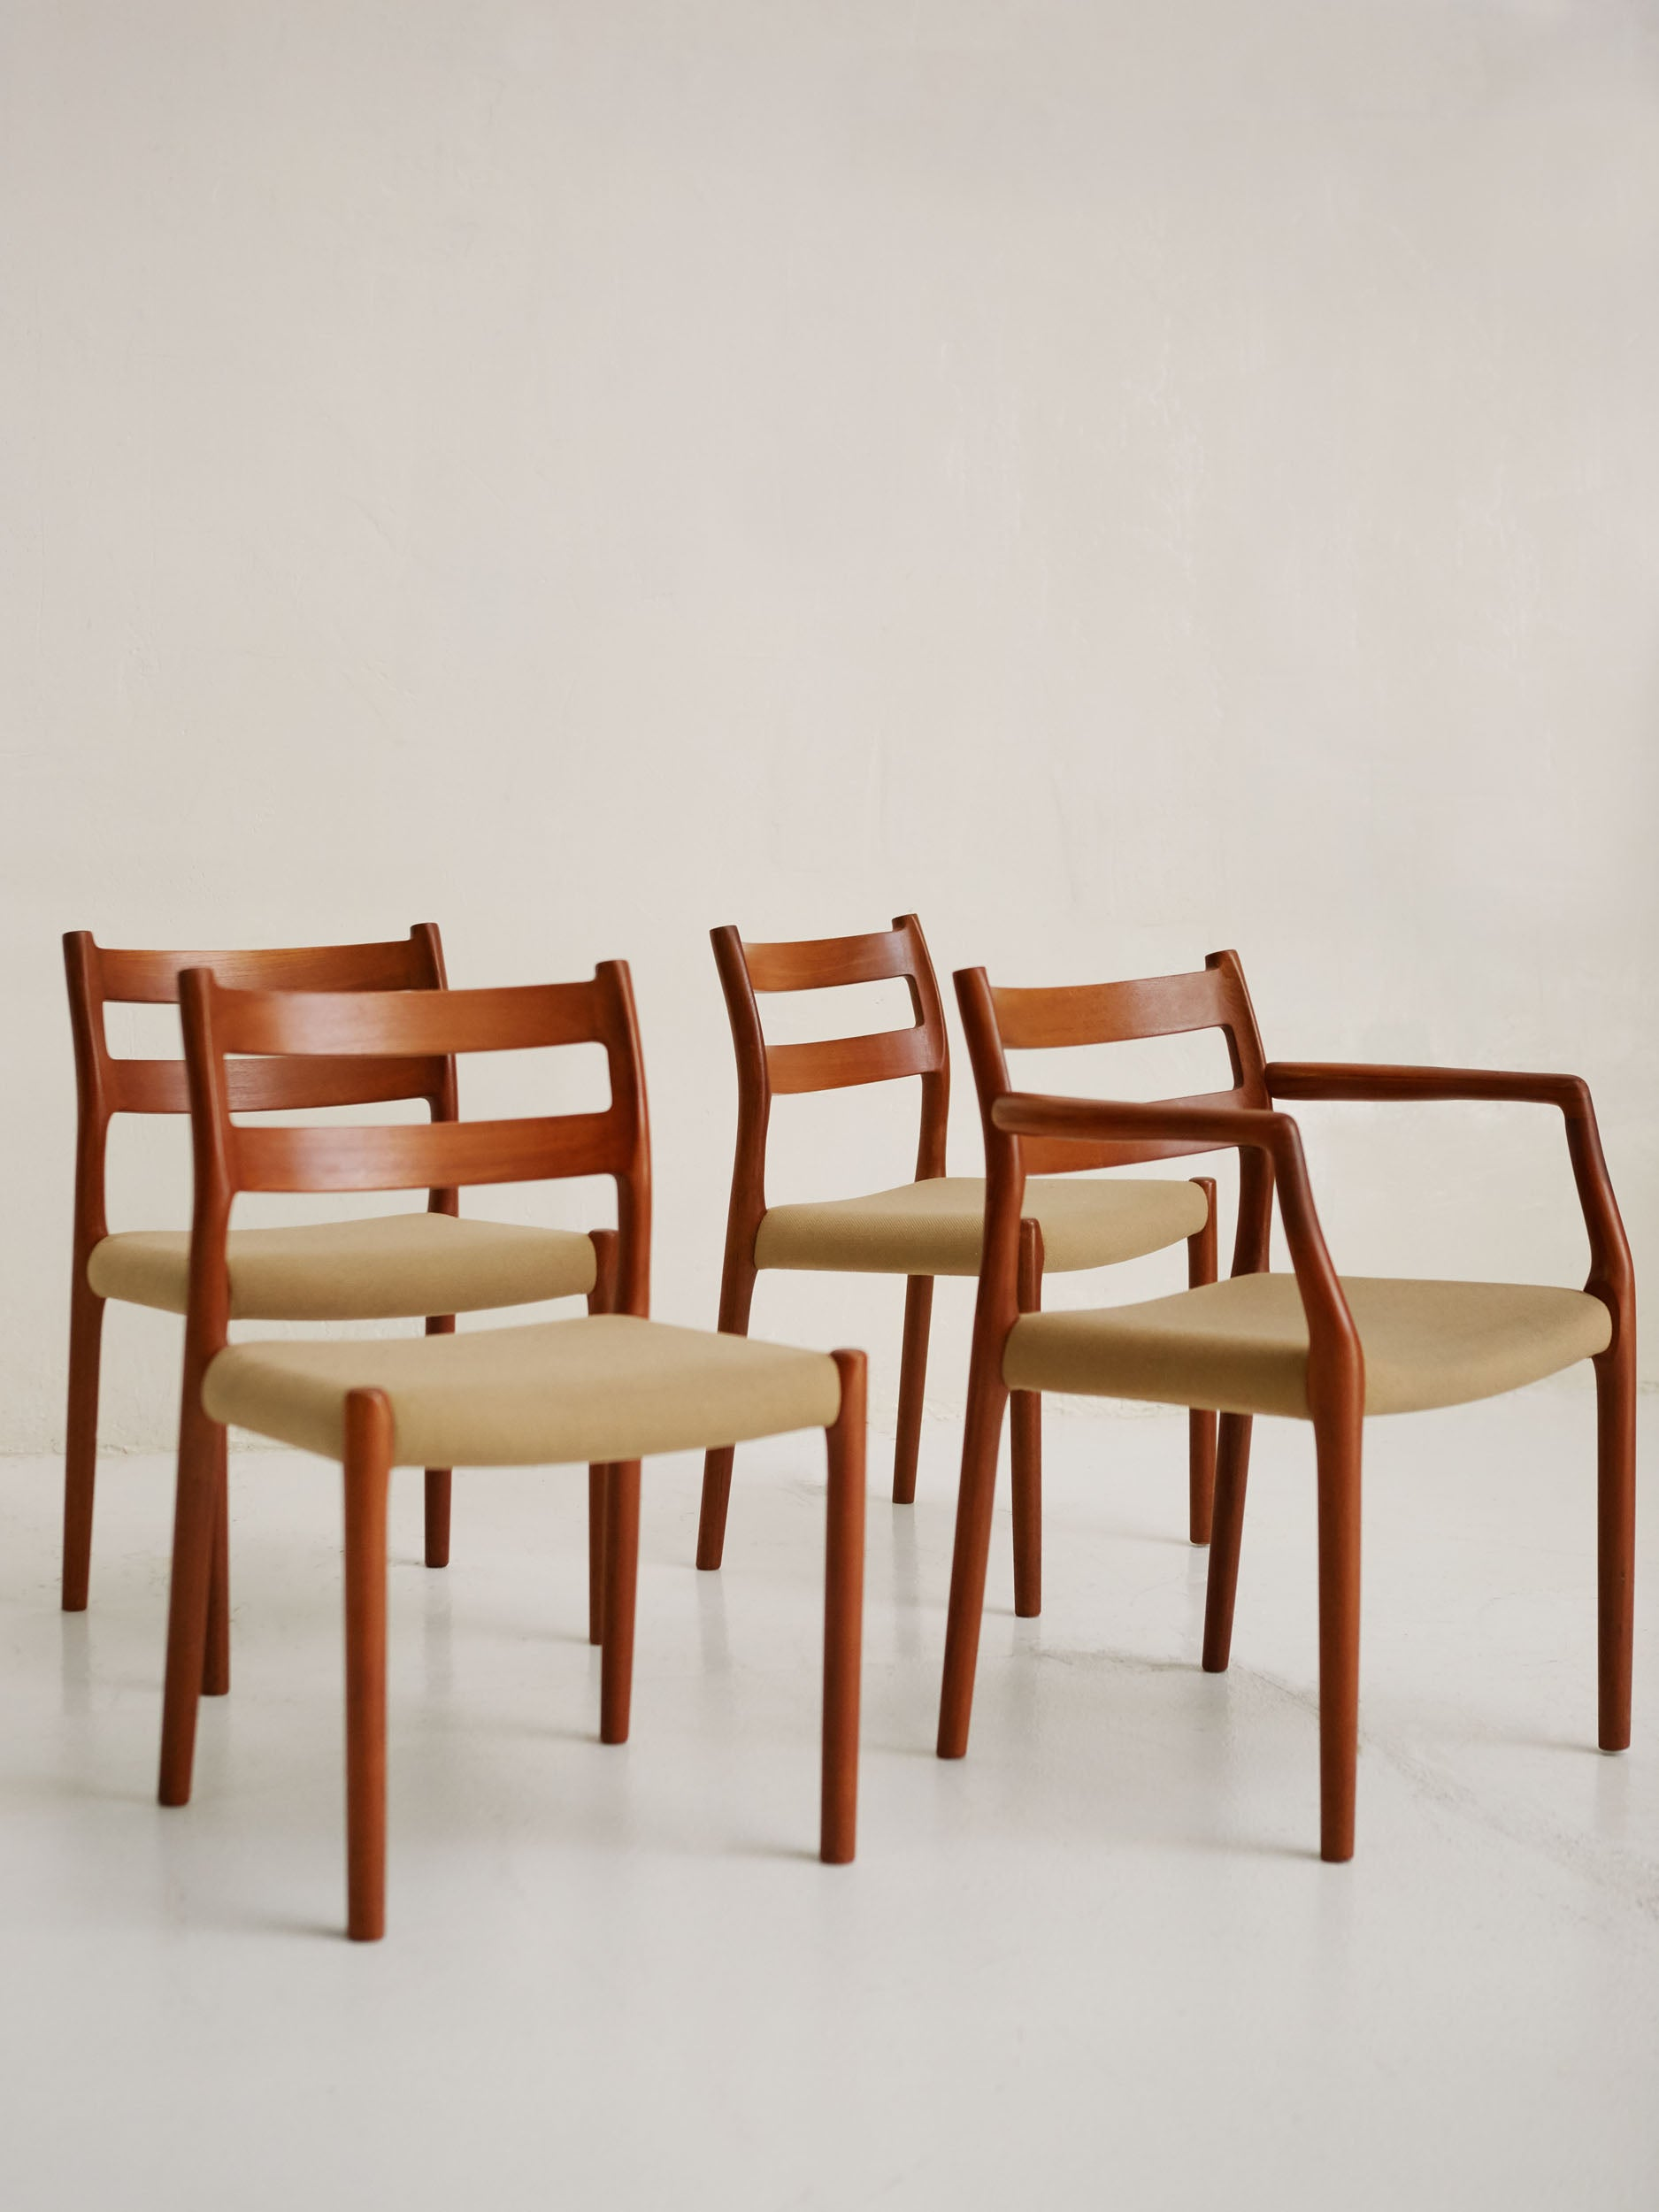 Dinning set of N° 84 Chairs by Niels O. Møller for J.L. Møllers